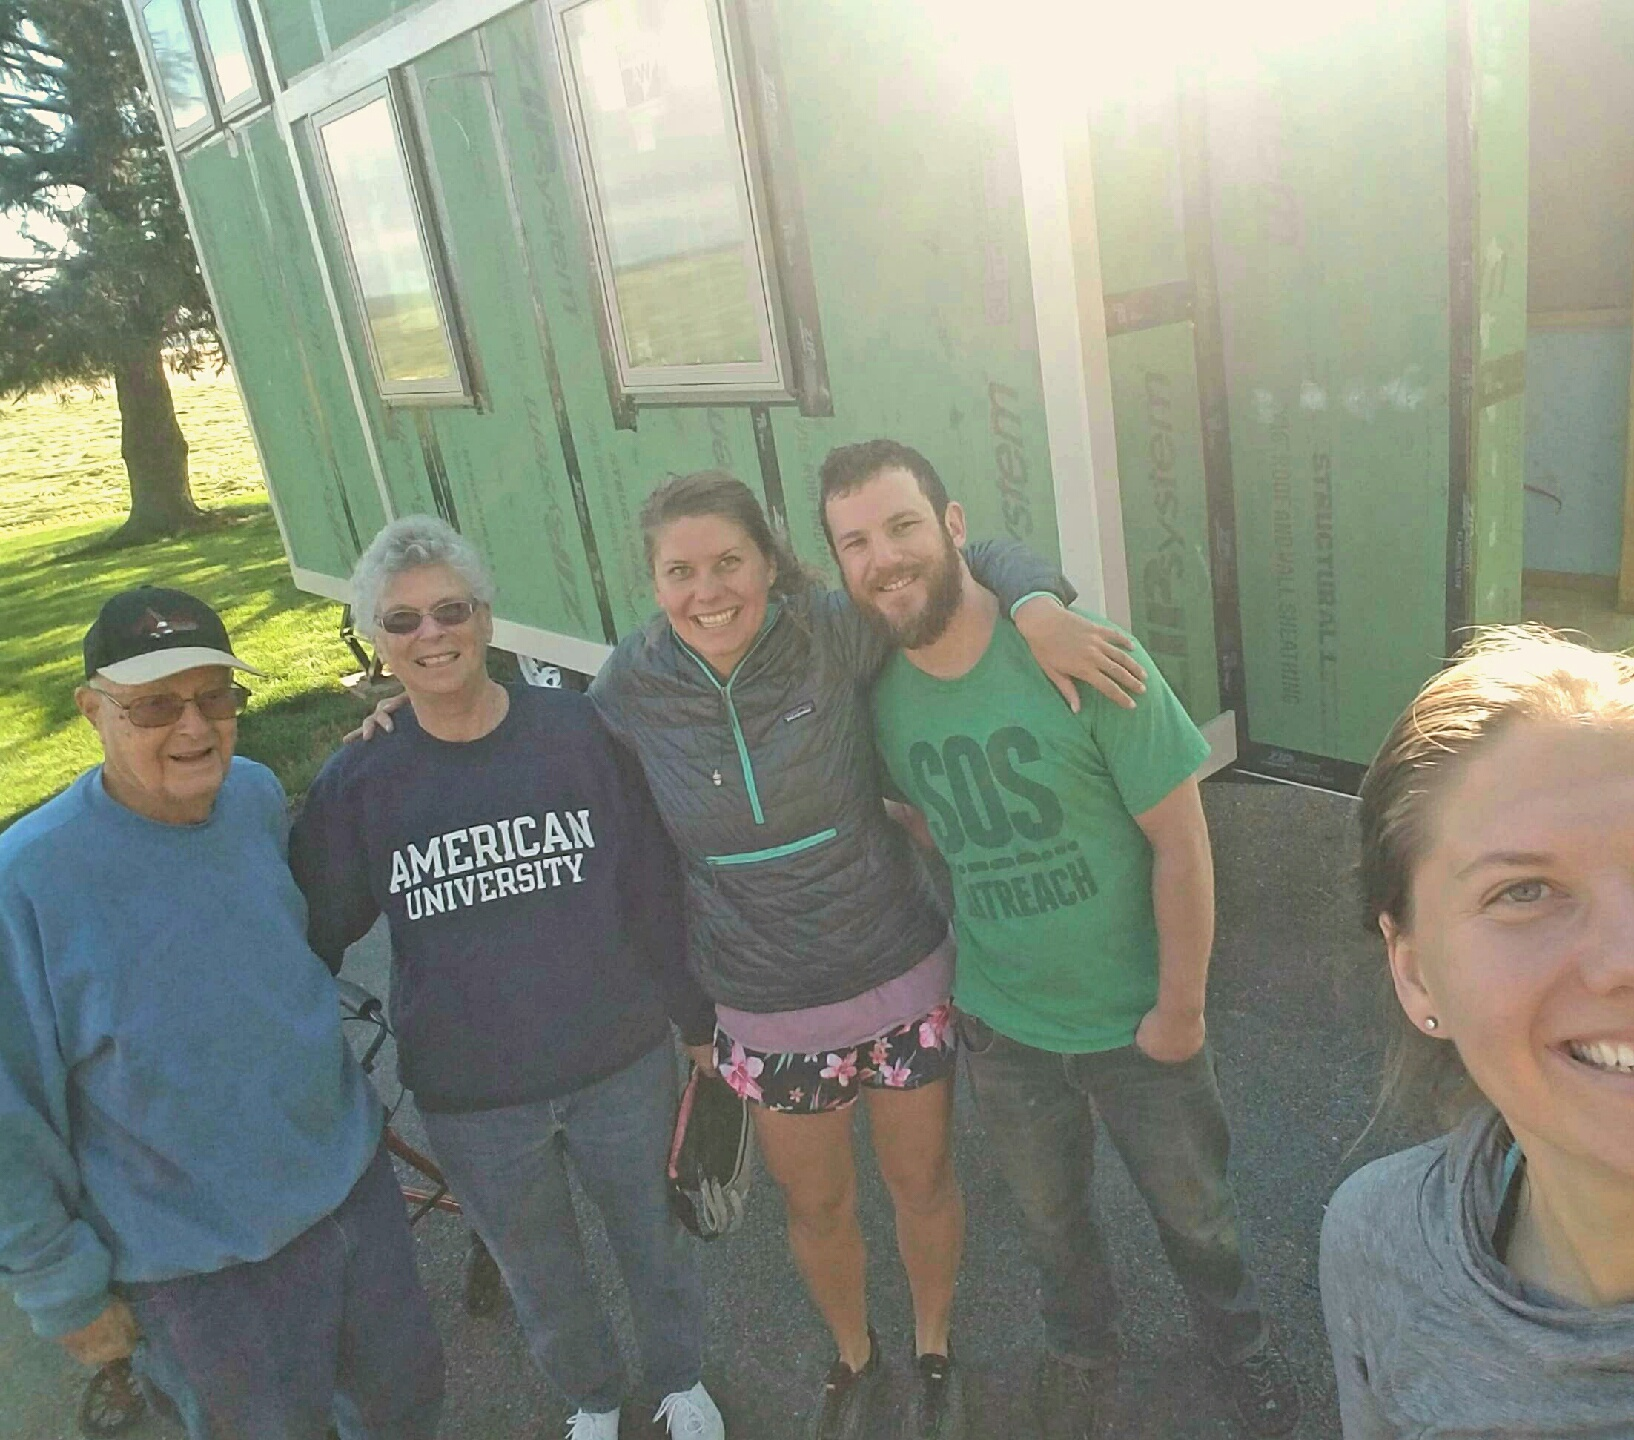 Thrilled that Tiny made the move without incident, Kahla grabbed a selfie with the new build site homeowners, her grandparents, and her sister Alexa and her sister's boyfriend Will. Thanks to all for helping!